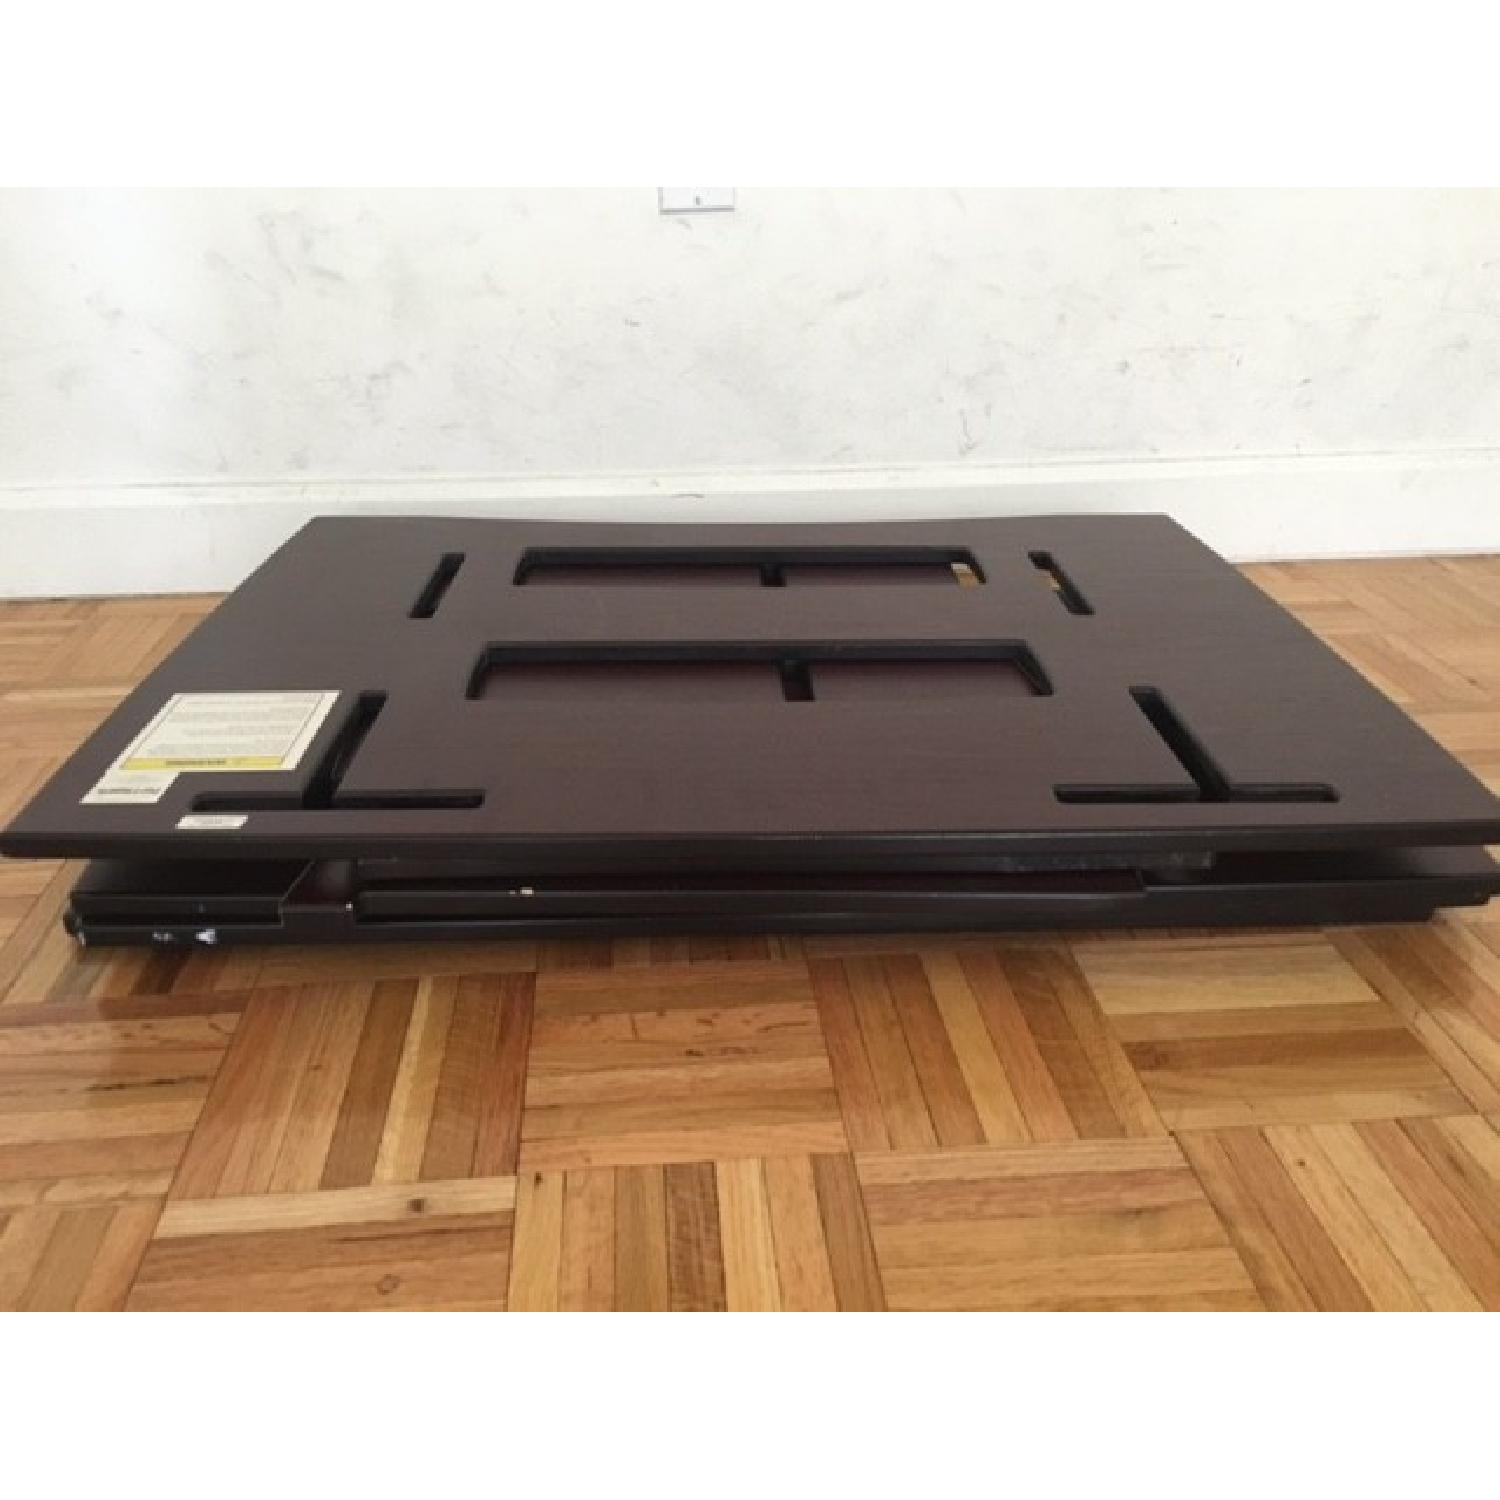 Pier 1 Collapsible TV Stand - image-7